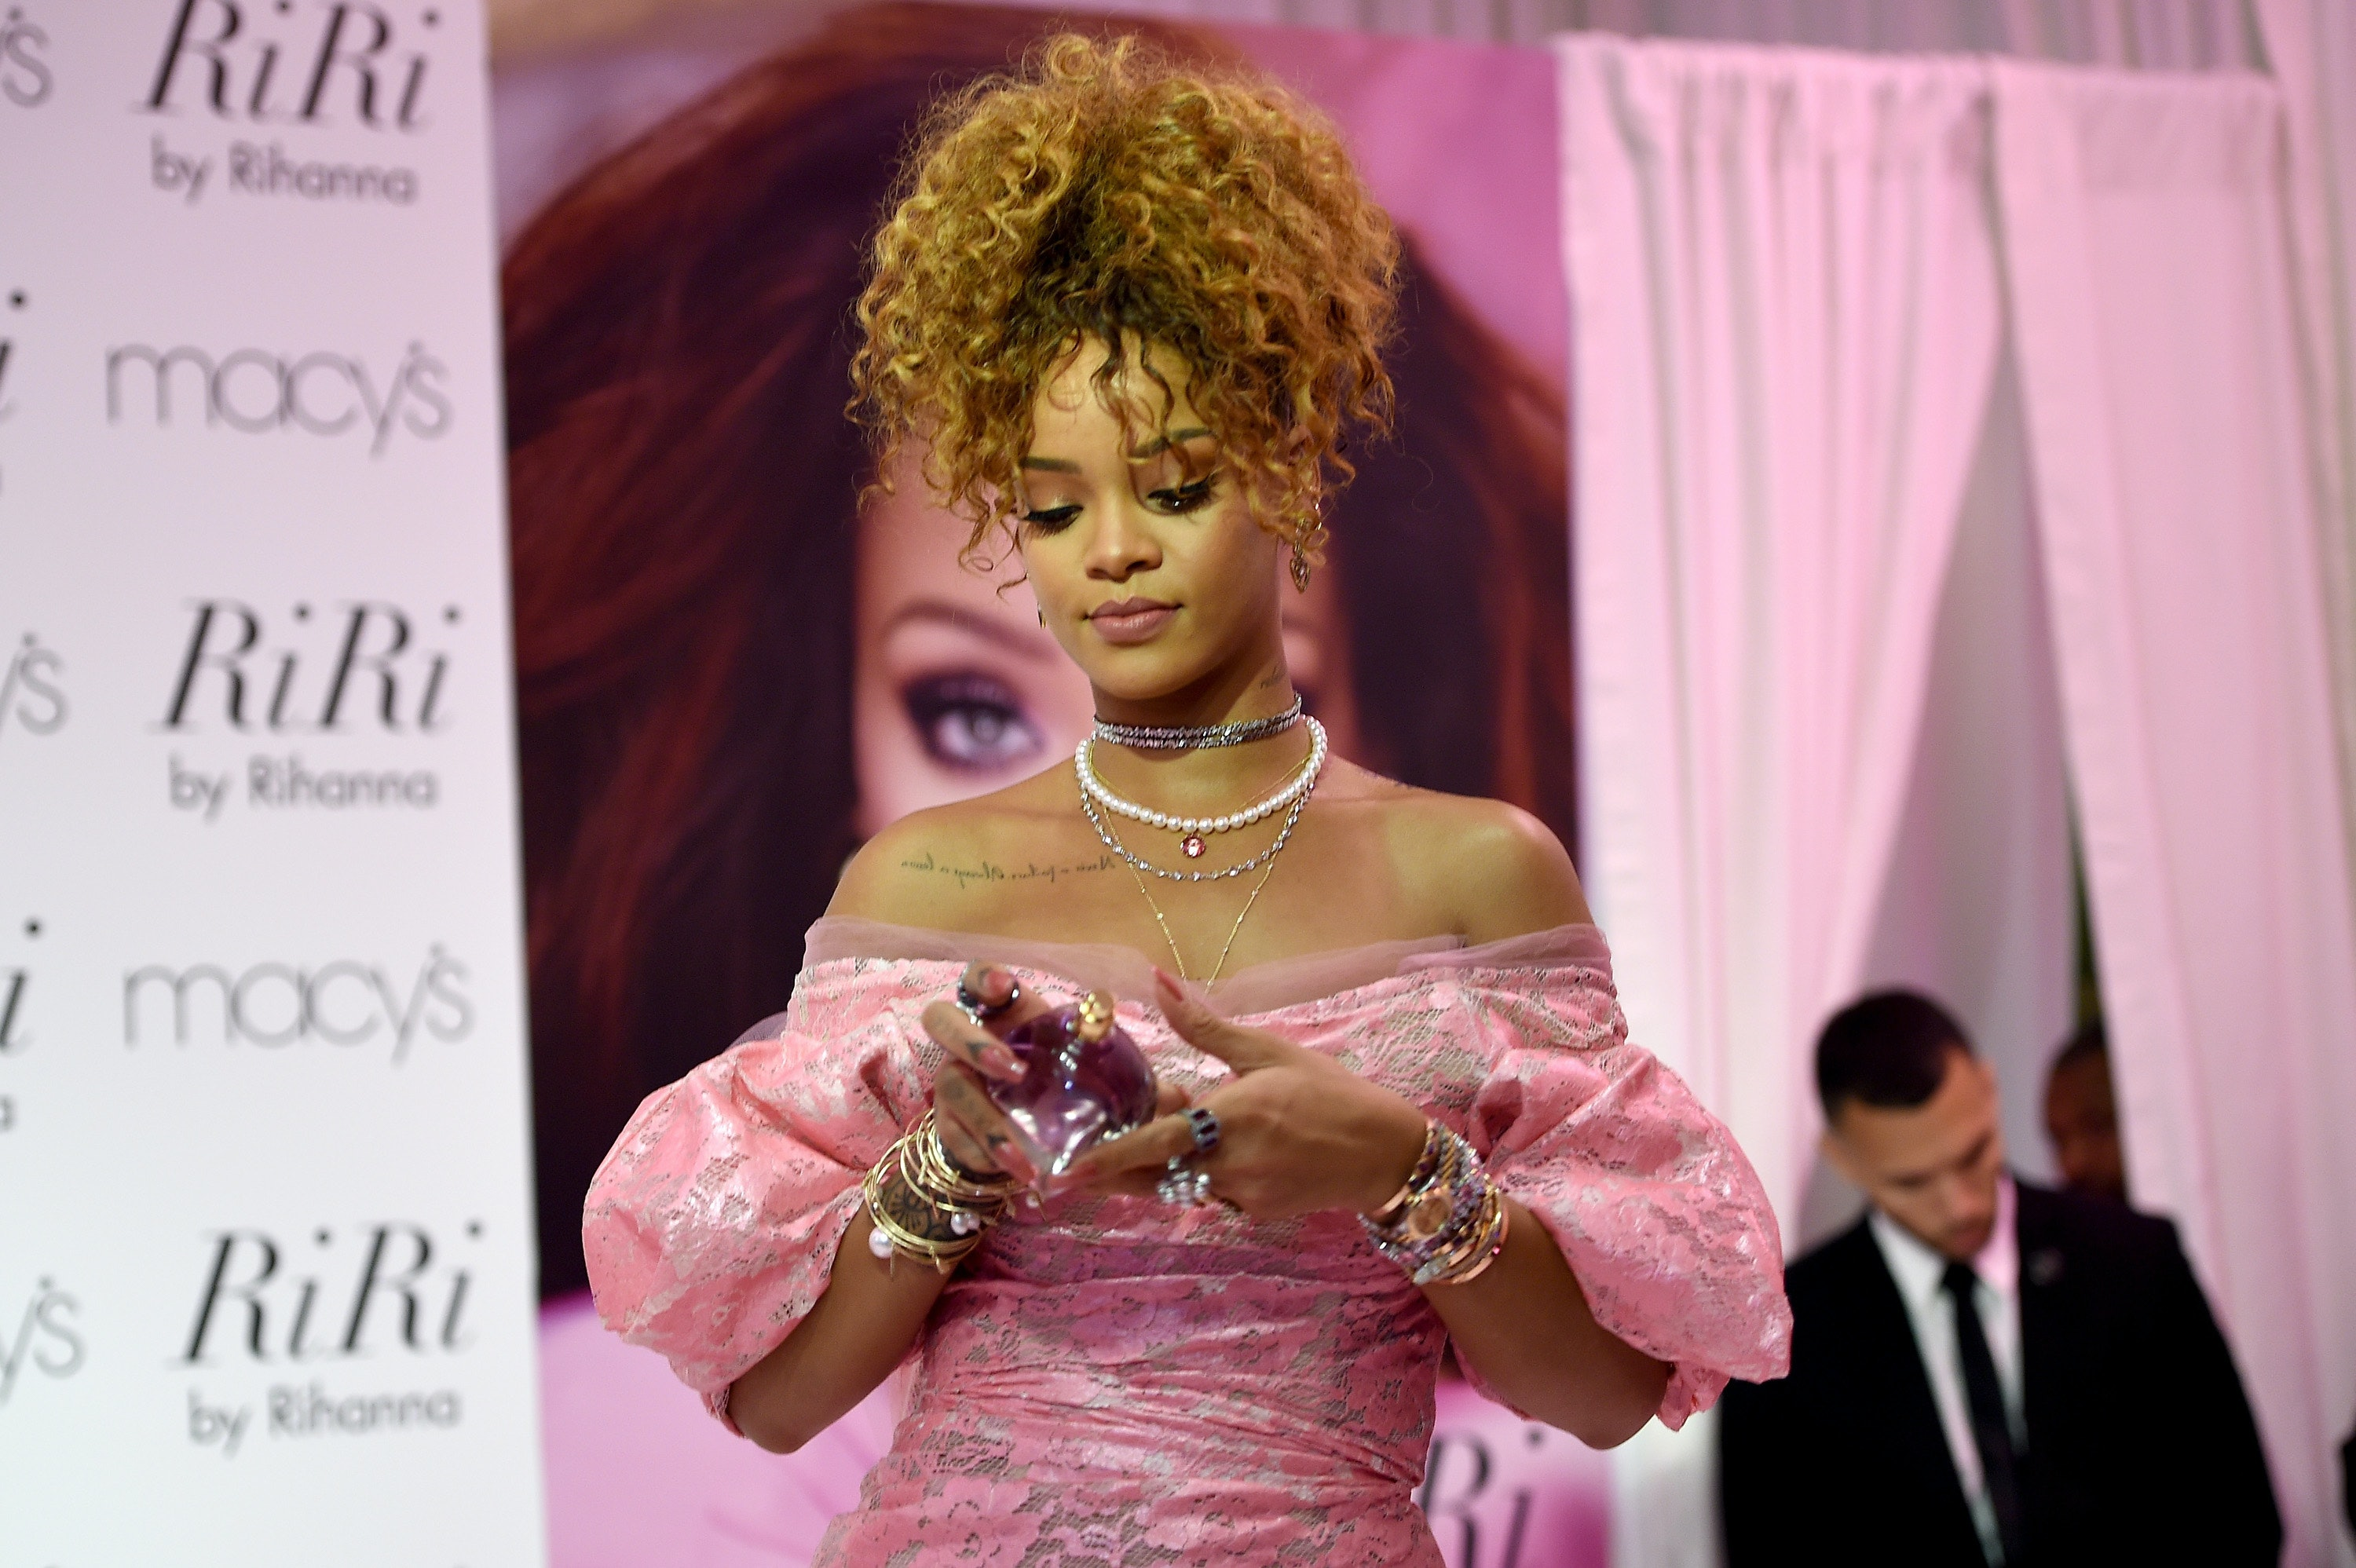 Rihanna Channeled \'80s Prom Chic In Pink Dress At RiRi Fragrance Launch